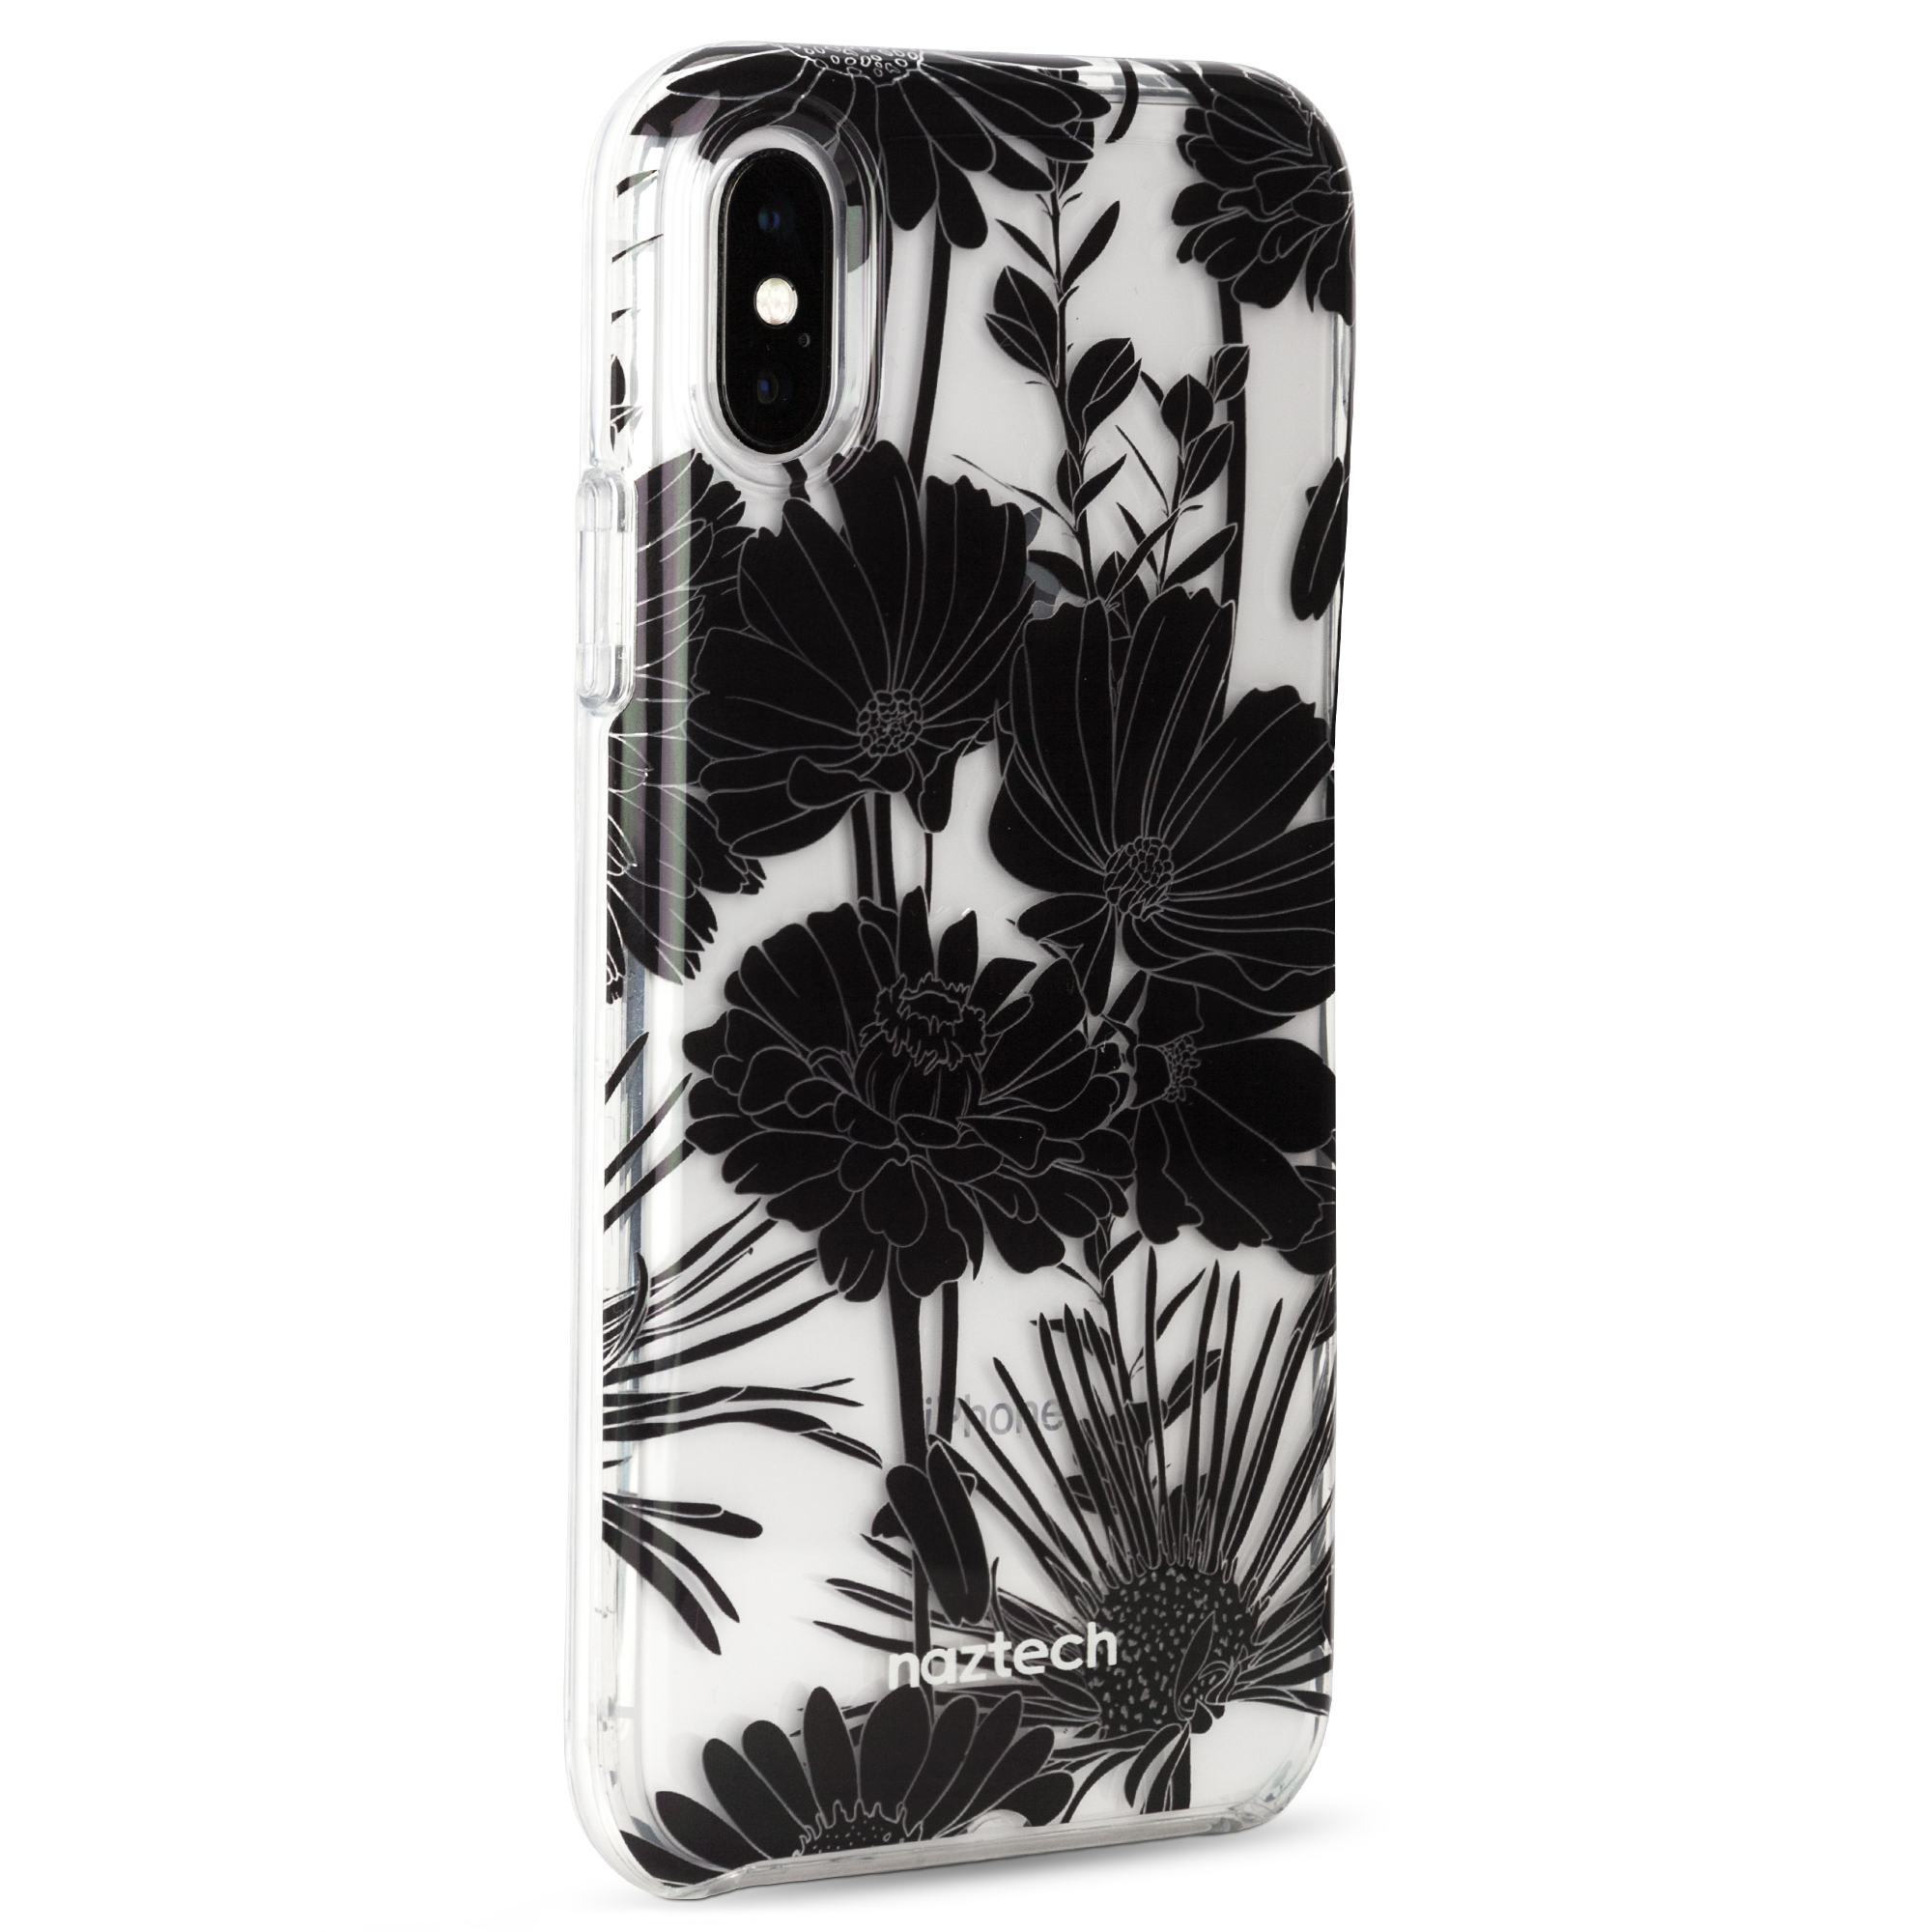 Naztech Hybrid PC + TPU Case for iPhone X/XS - Black Floral